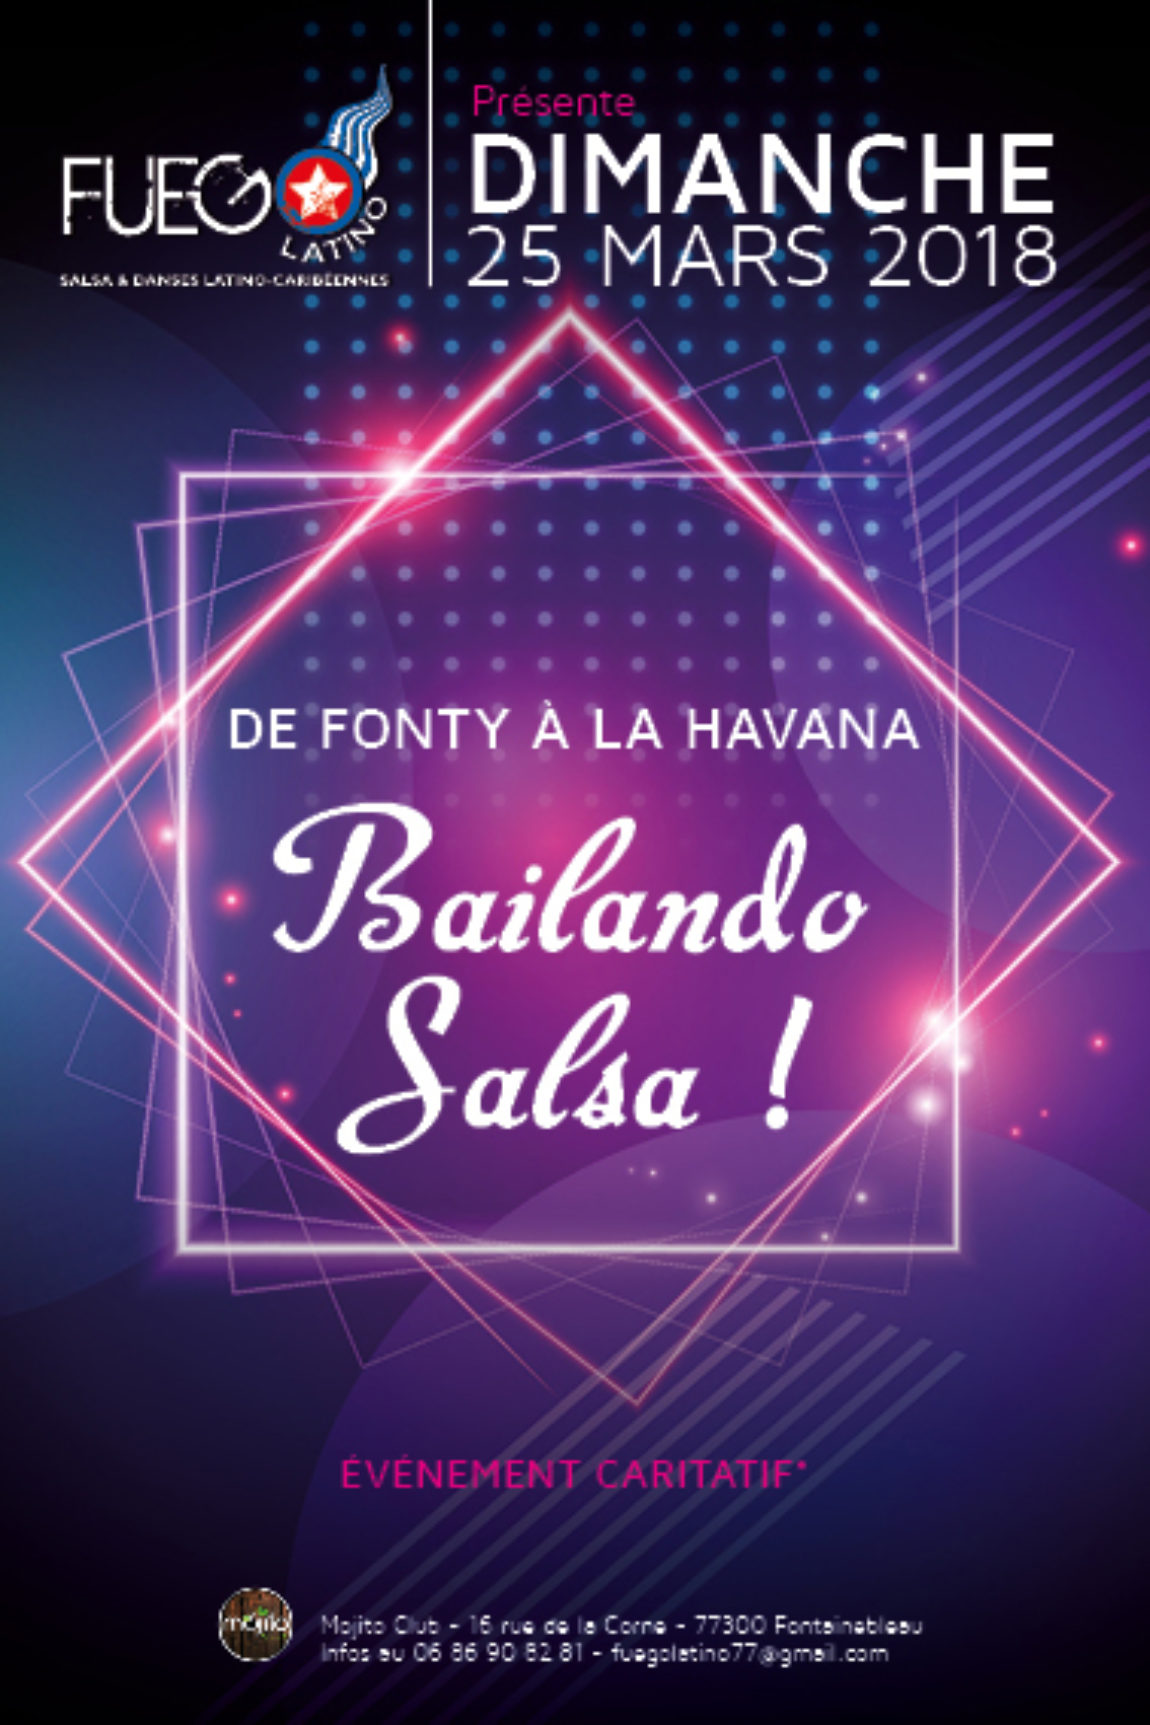 Flyer_Evenement_caritatif_salsa_A6_control